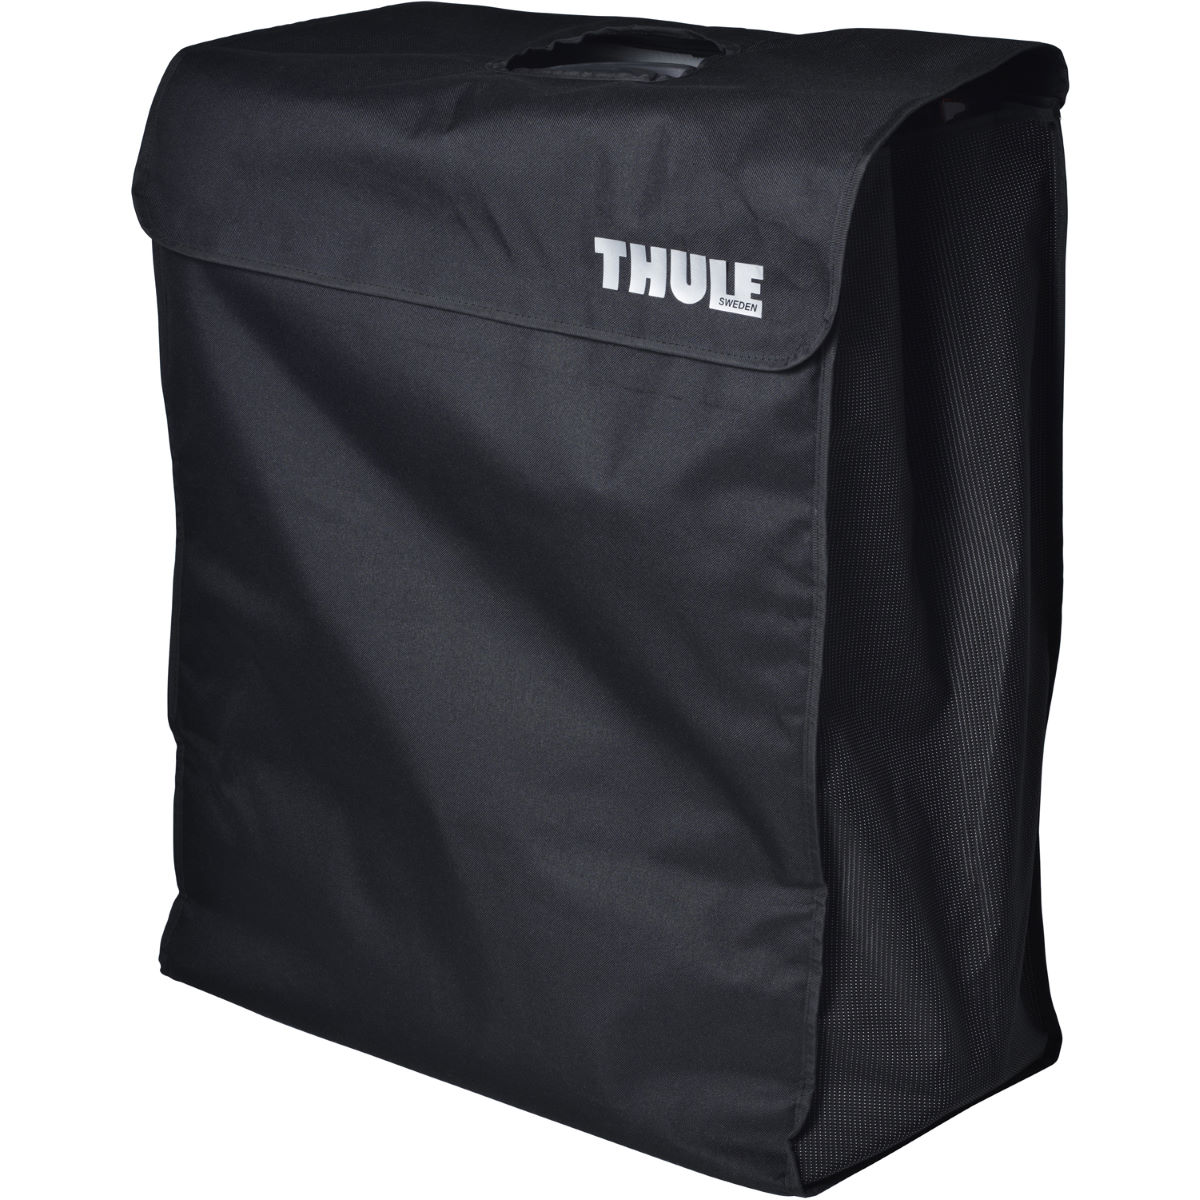 Thule Car Rack Carry Bag - Portabicicletas de portón y maletero